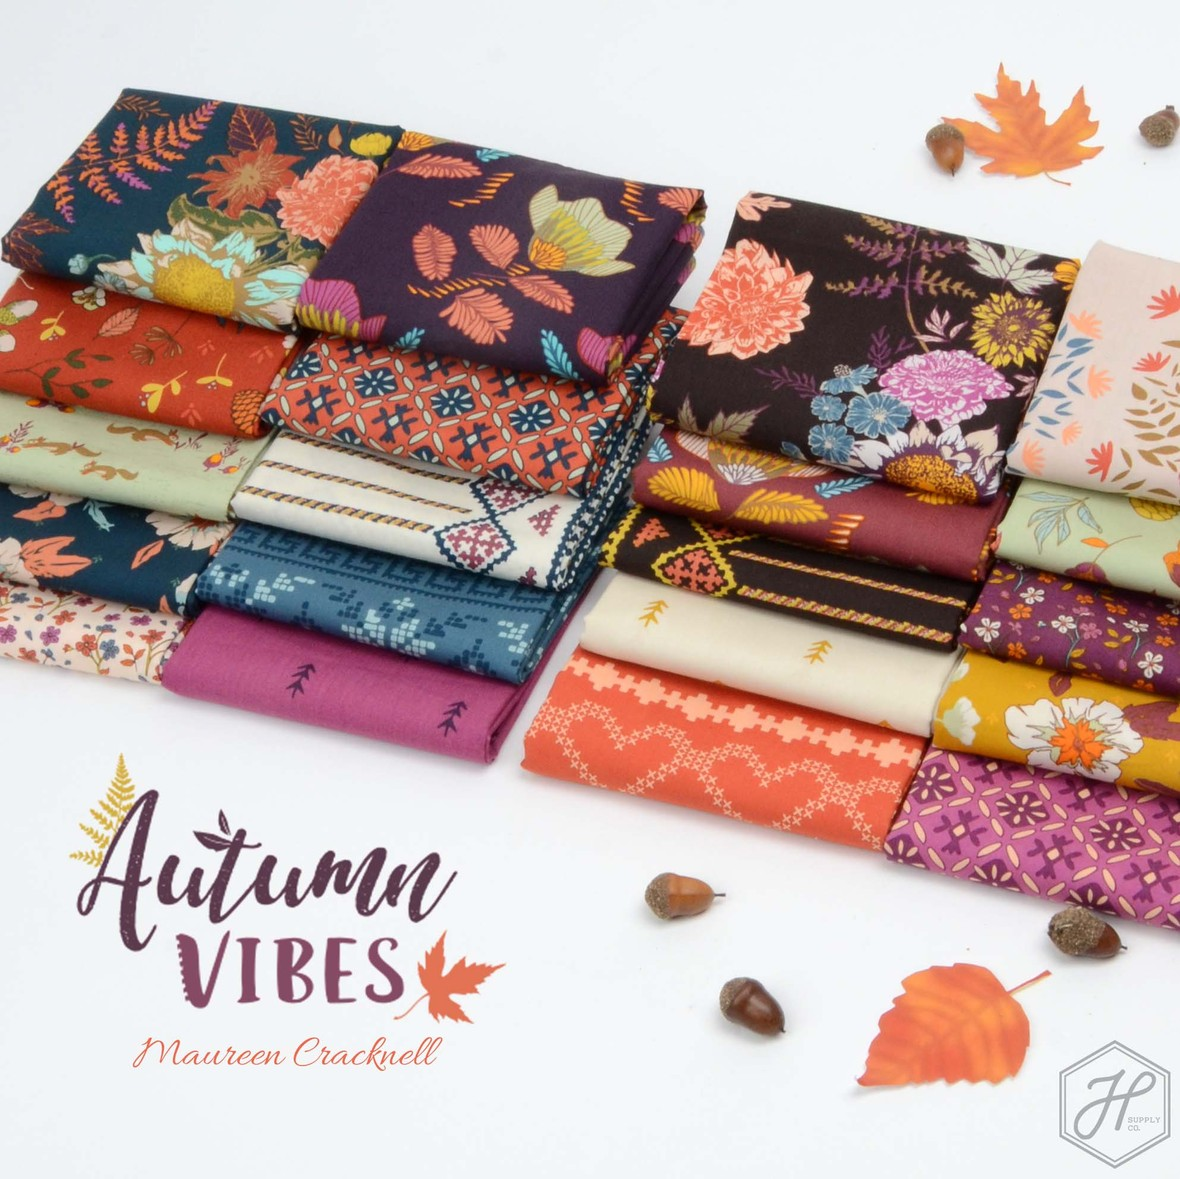 Autumn Vibes Fabric Poster Maureen Cracknell at Hawthorne Supply Co